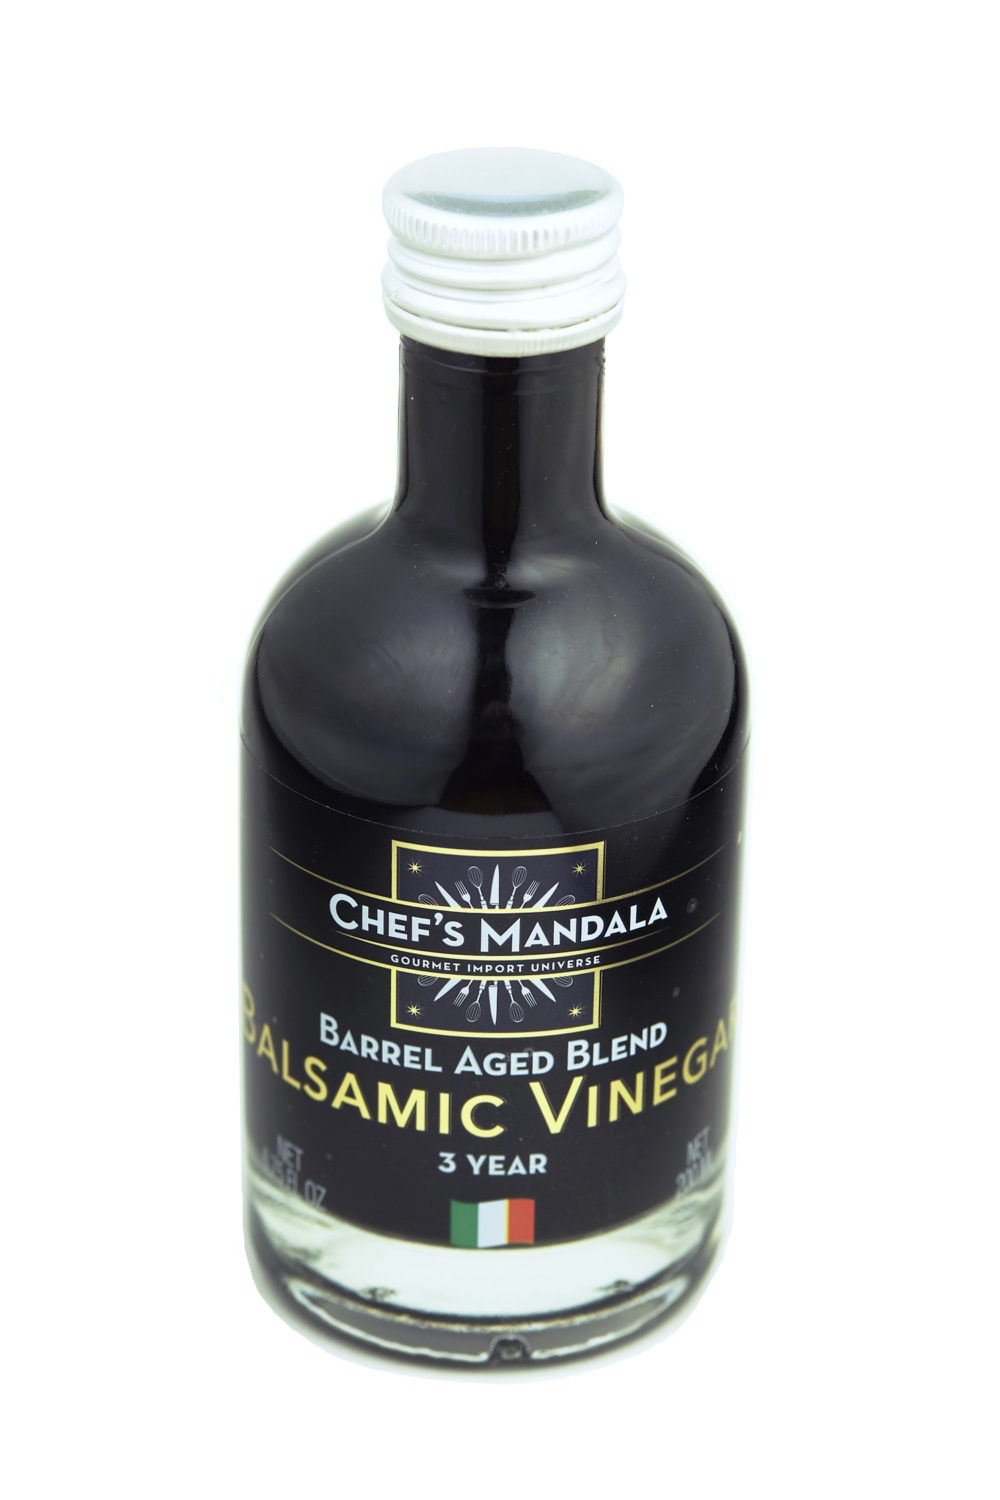 Chef Mandala's Dark Balsamic Vinegar